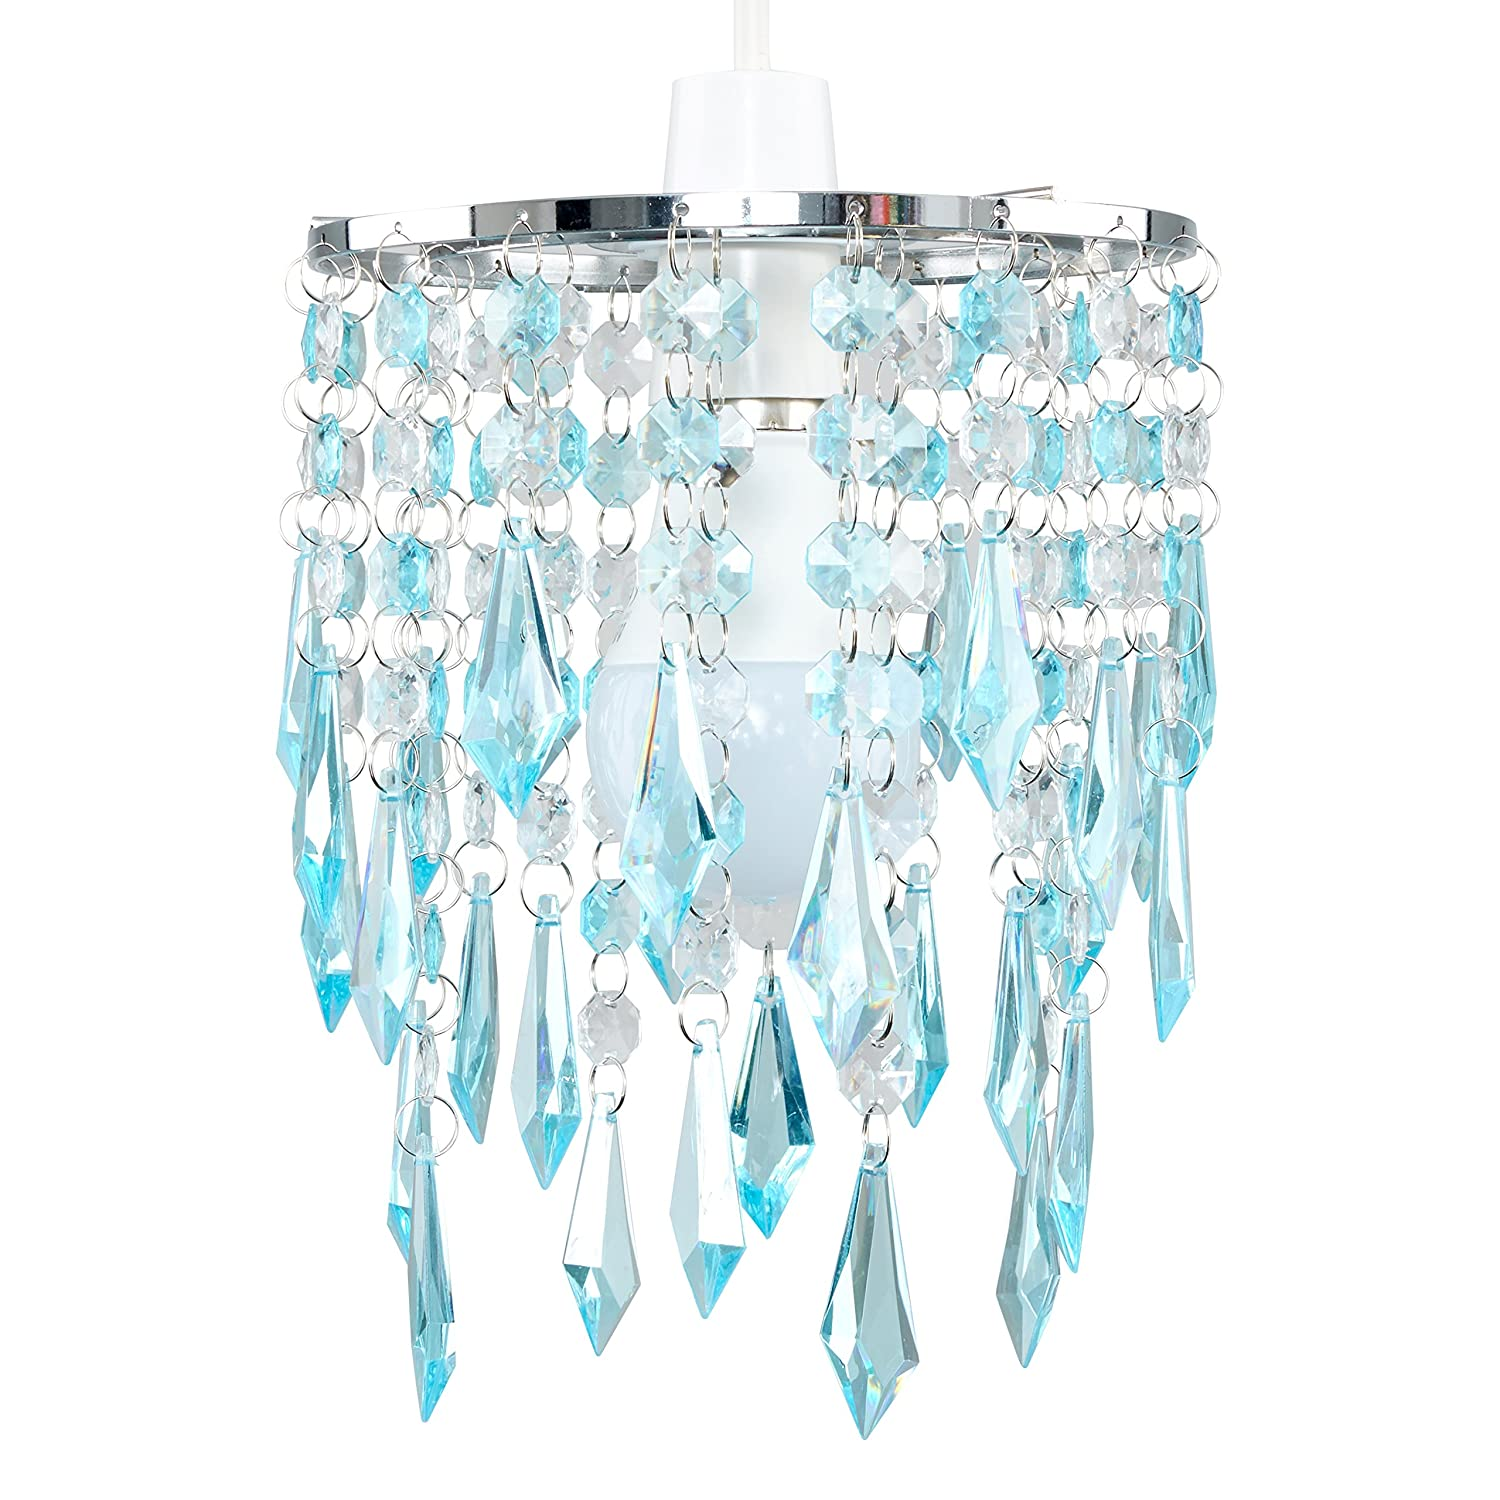 online store ef7ae 23234 MiniSun - Elegant Chandelier Design Ceiling Pendant Light Shade With  Beautiful Teal And Clear Acrylic Jewel Effect Droplets